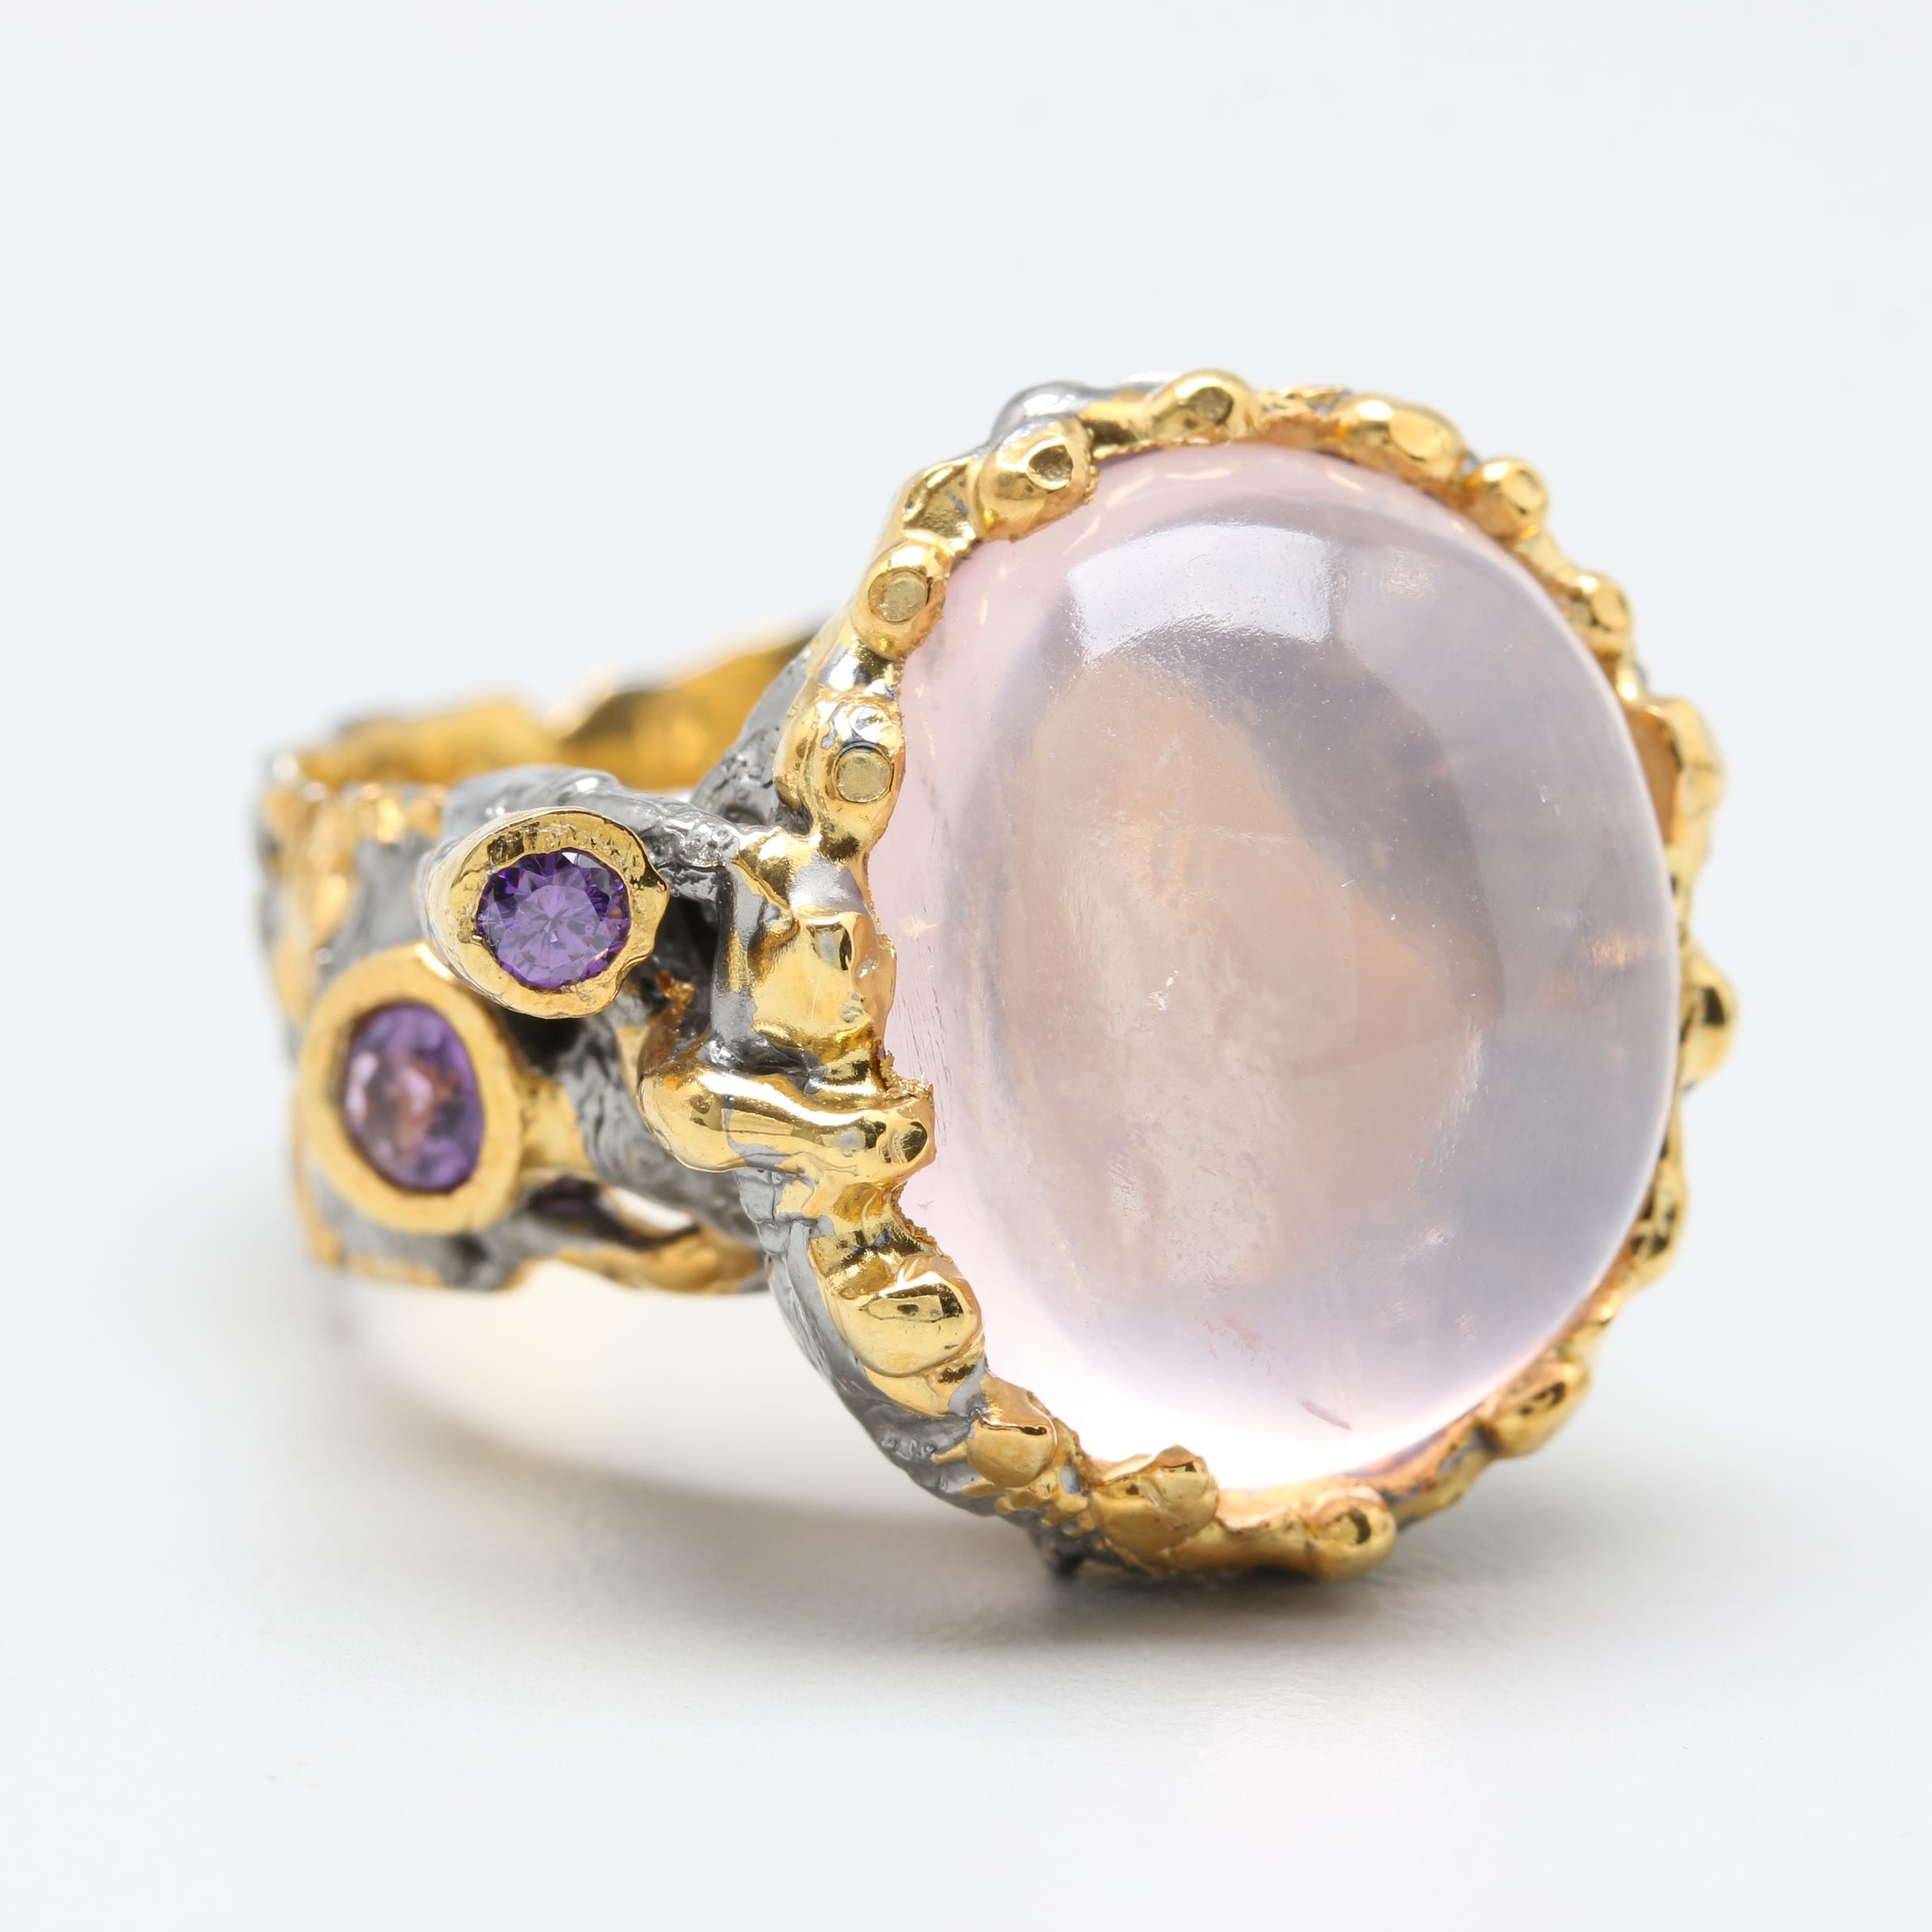 Sterling Silver Rose Quartz and Amethyst Ring with Gold Wash